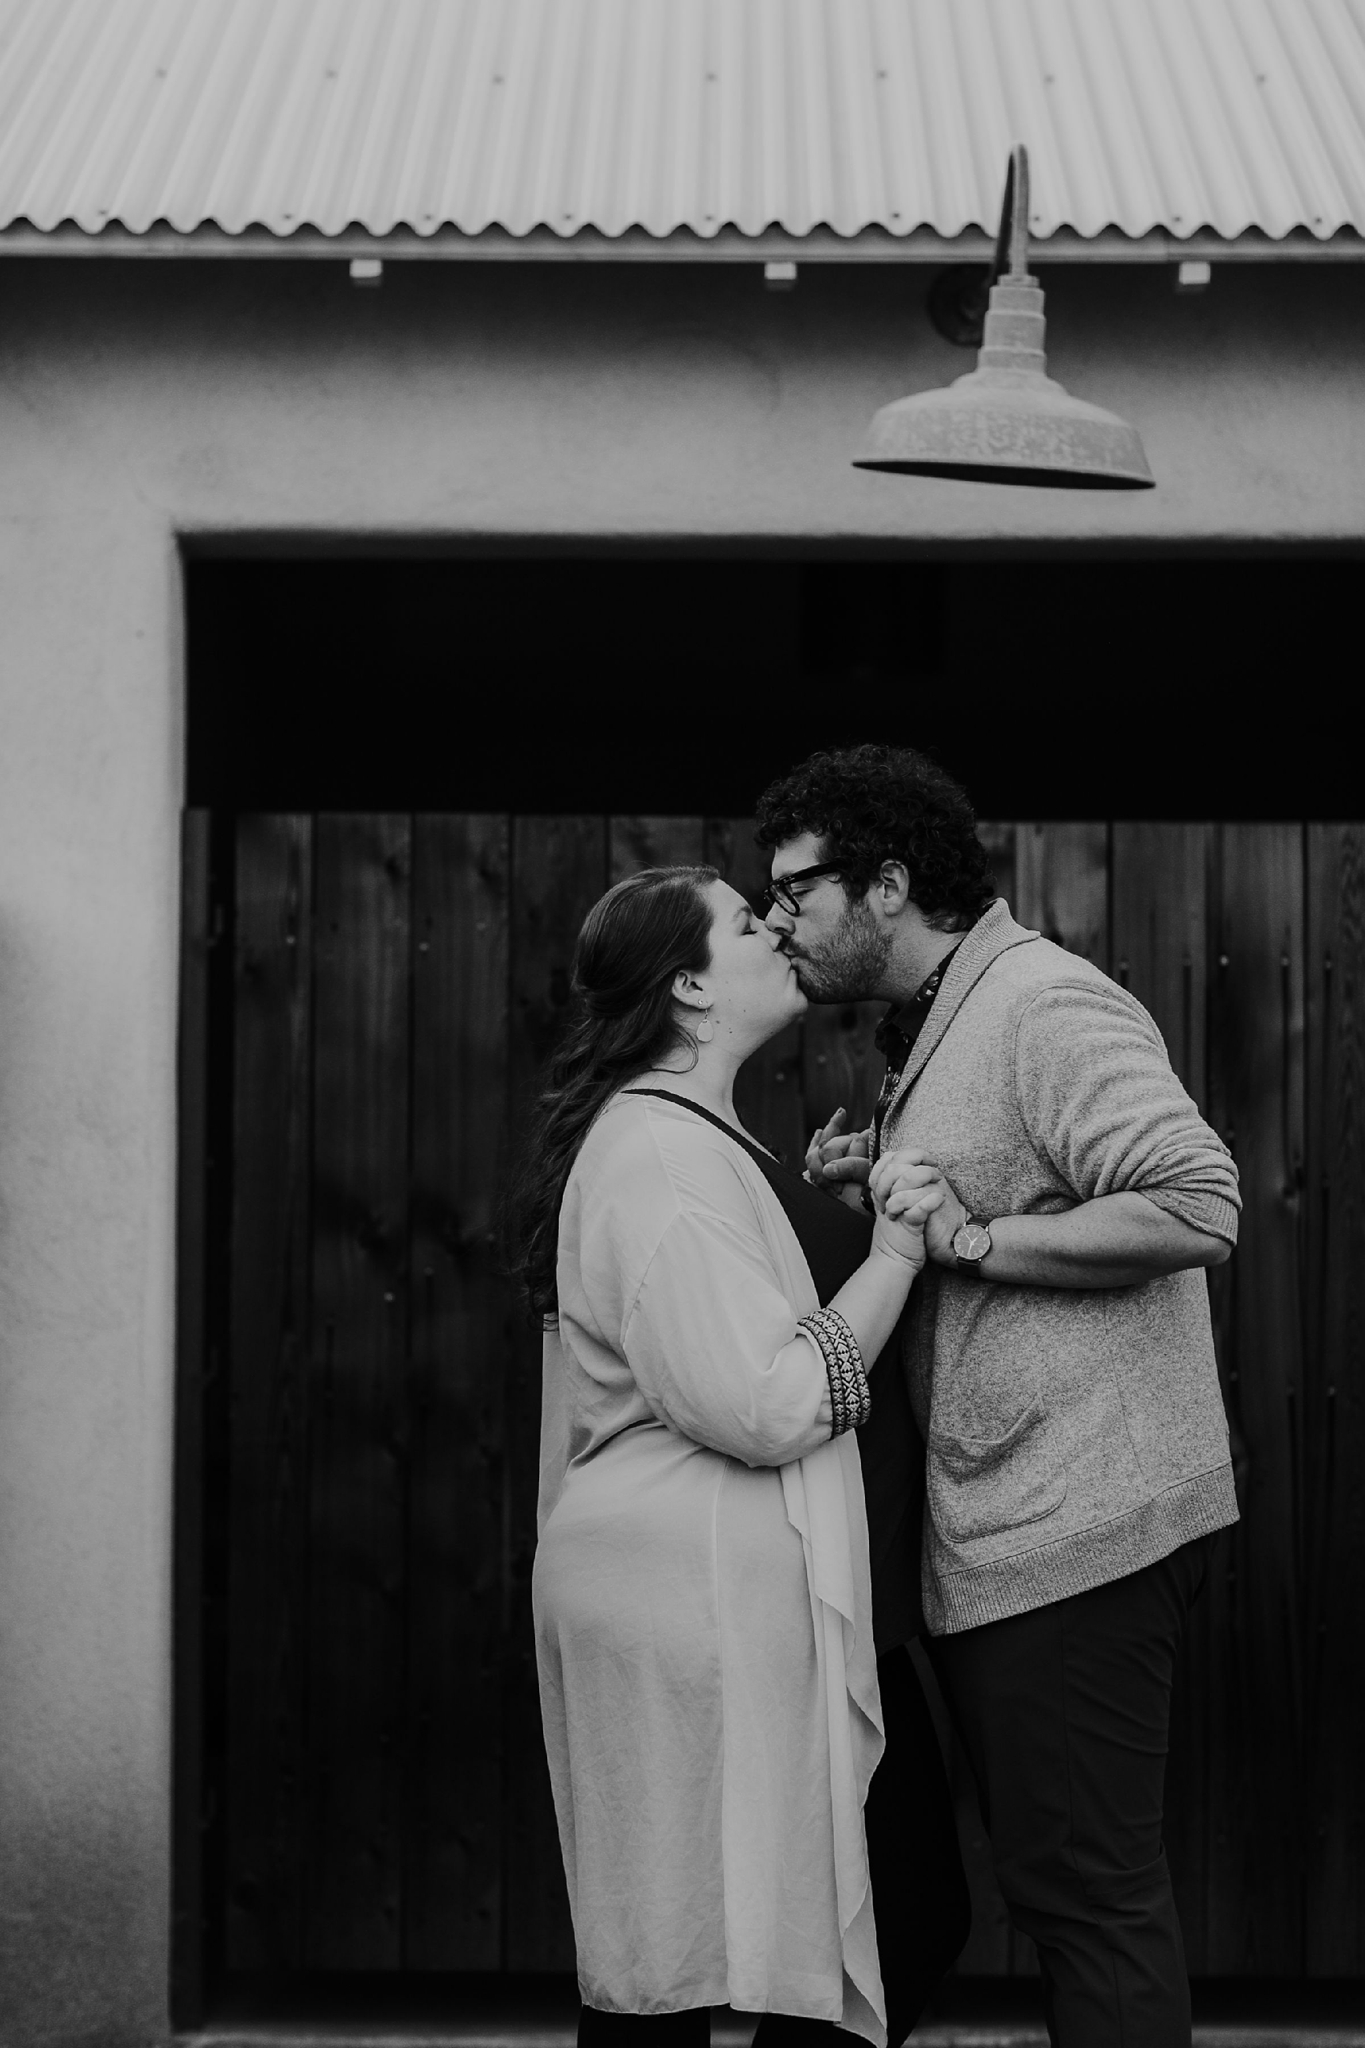 Alicia+lucia+photography+-+albuquerque+wedding+photographer+-+santa+fe+wedding+photography+-+new+mexico+wedding+photographer+-+new+mexico+engagement+-+los+poblanos+engagement+-+spring+engagement_0003.jpg